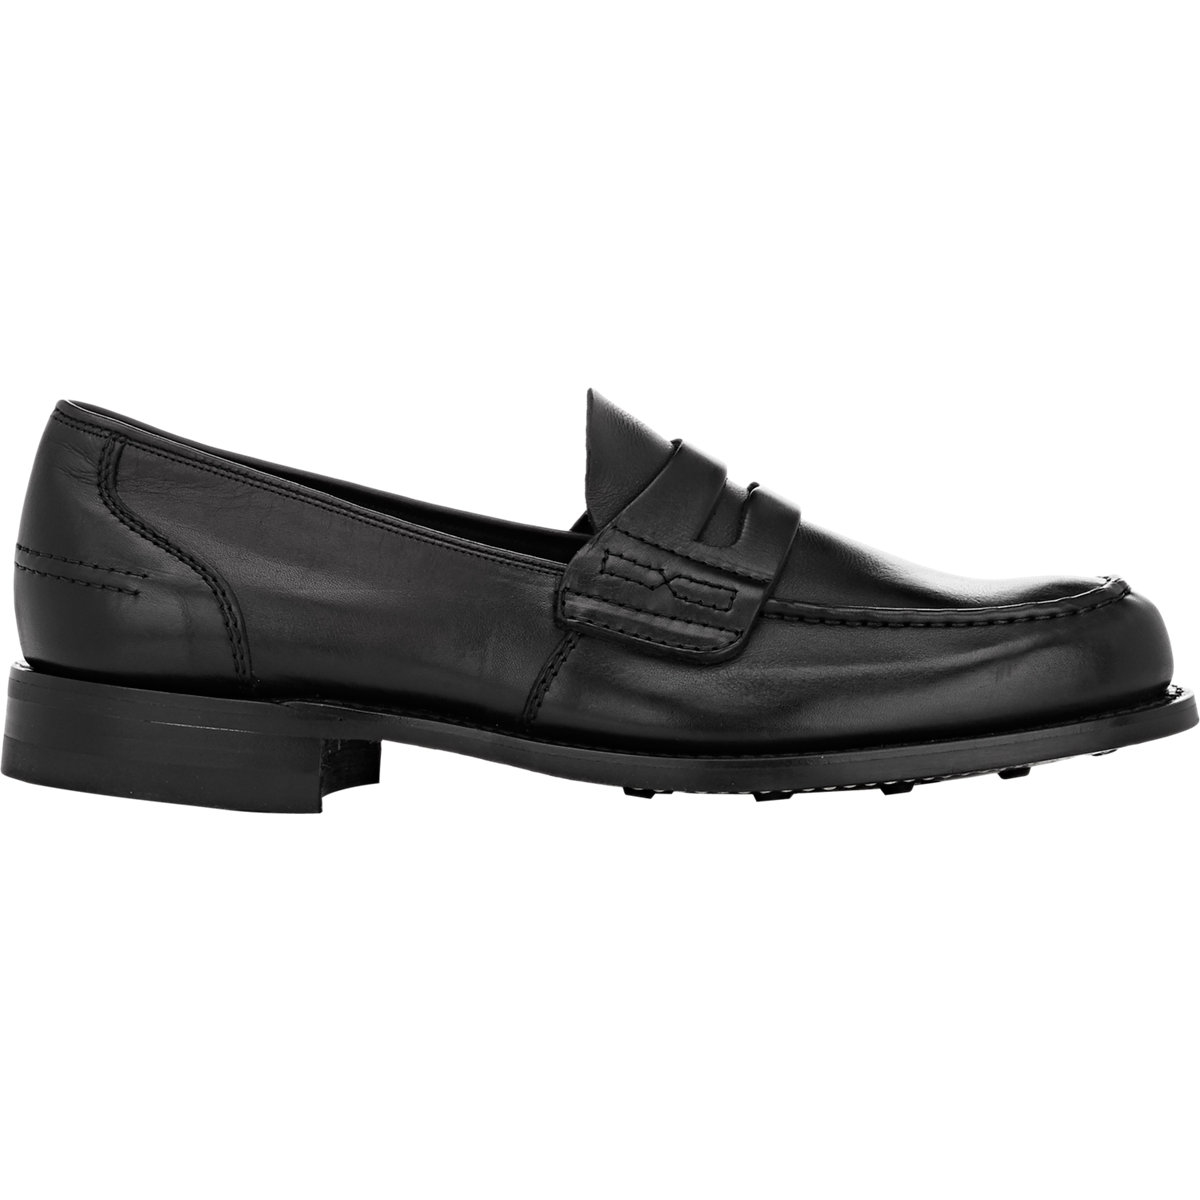 953a43d30e4 Lyst - Church s Neston Penny Loafers in Black for Men